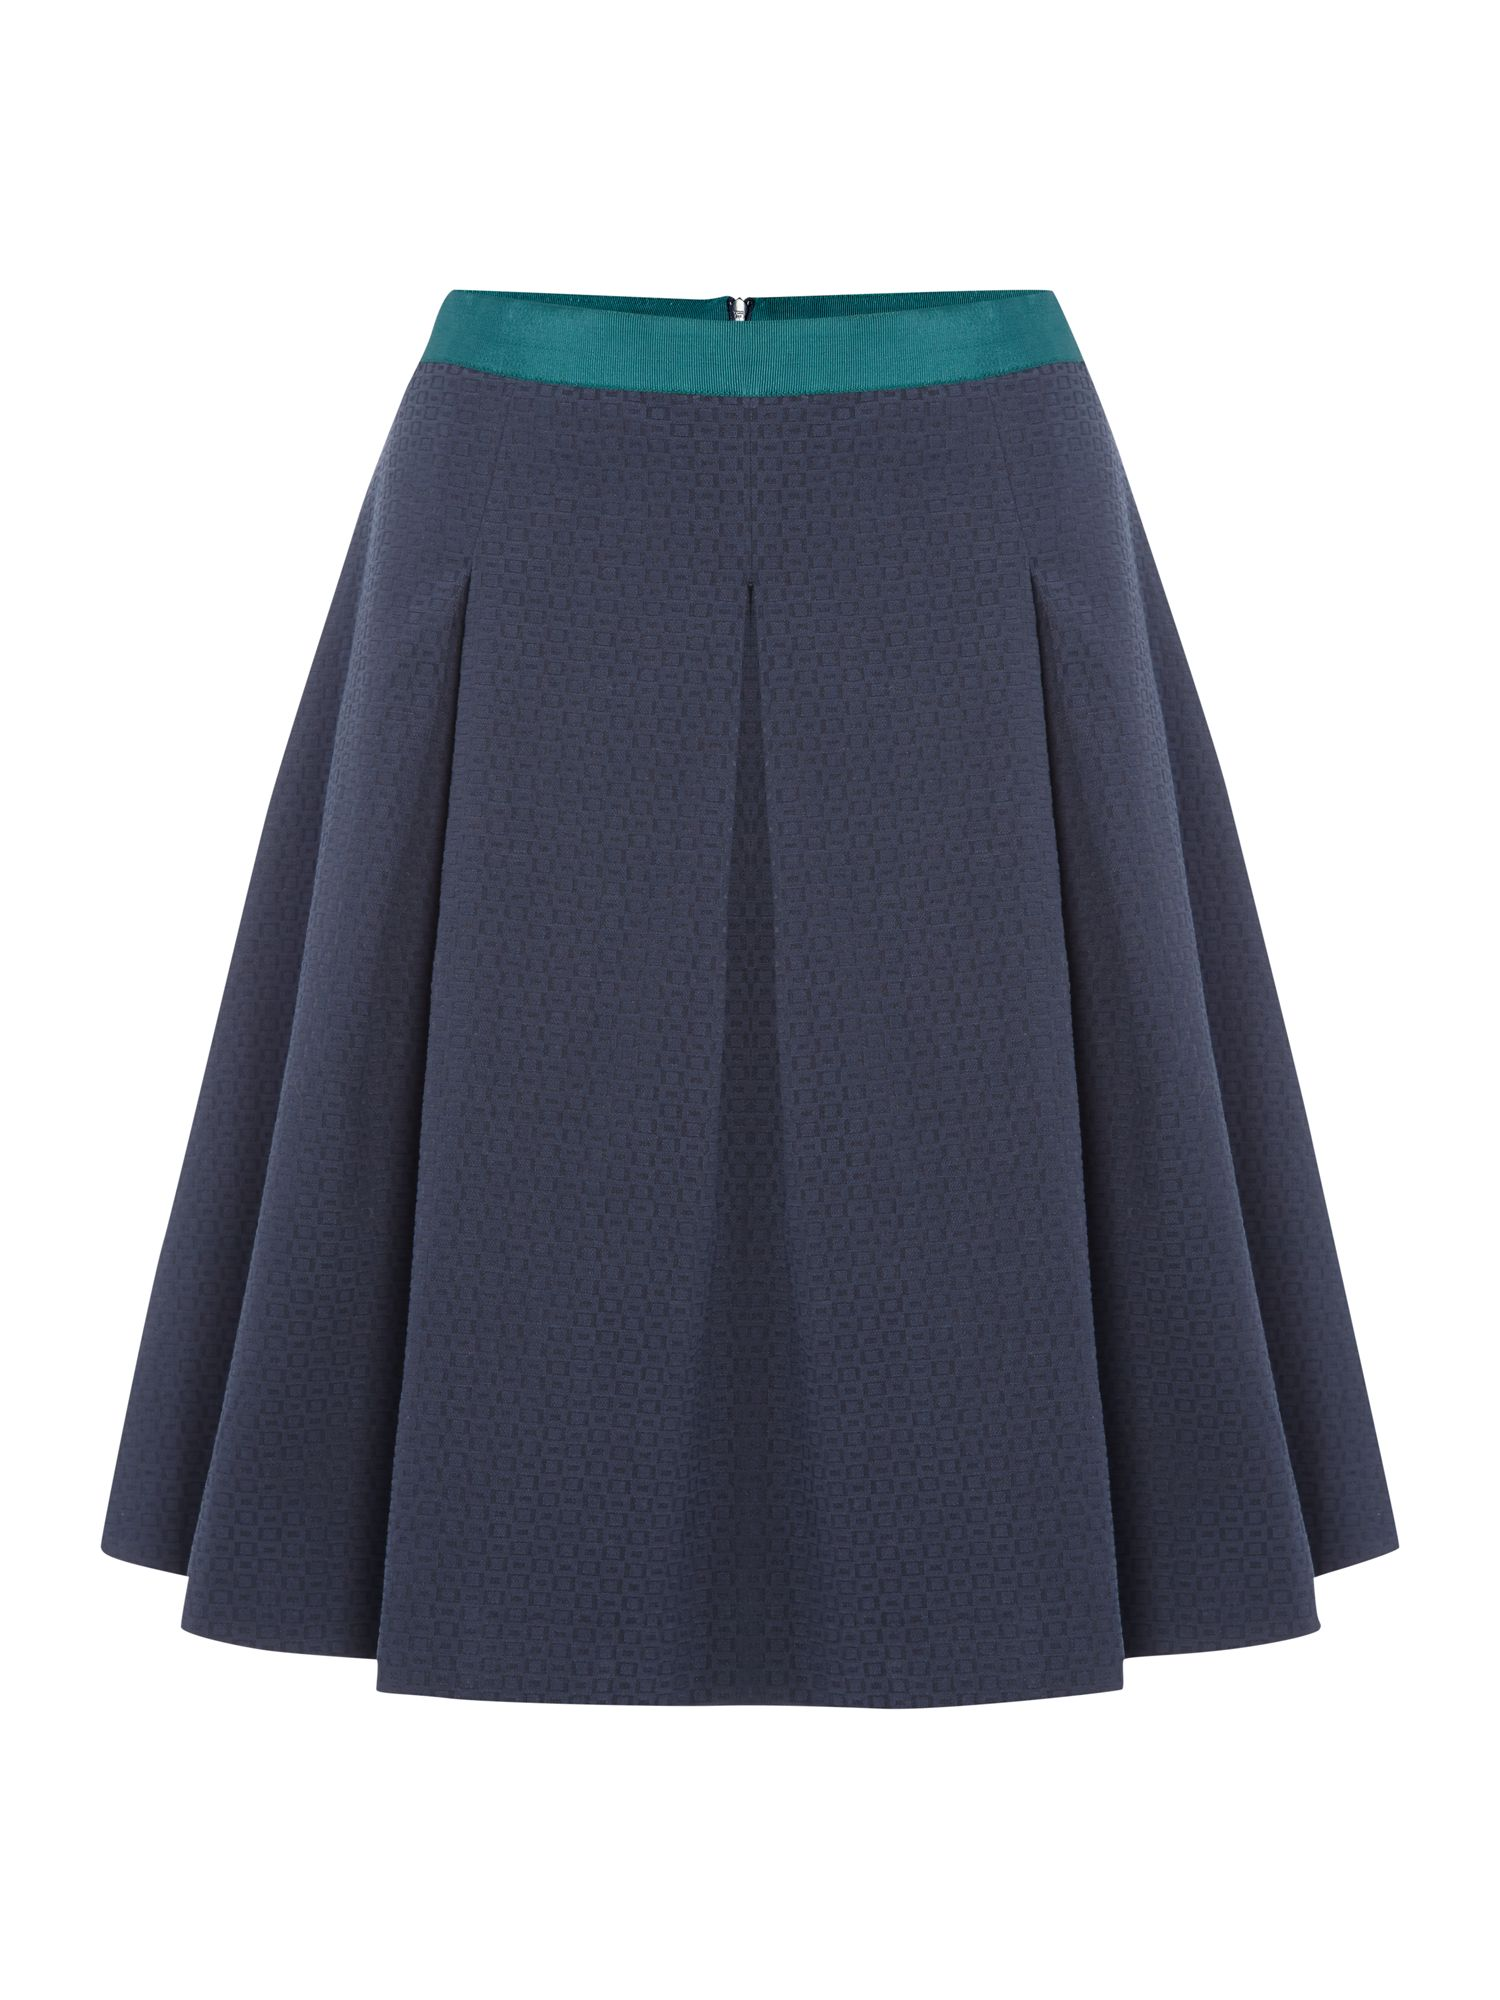 Ladies square jacquard skirt